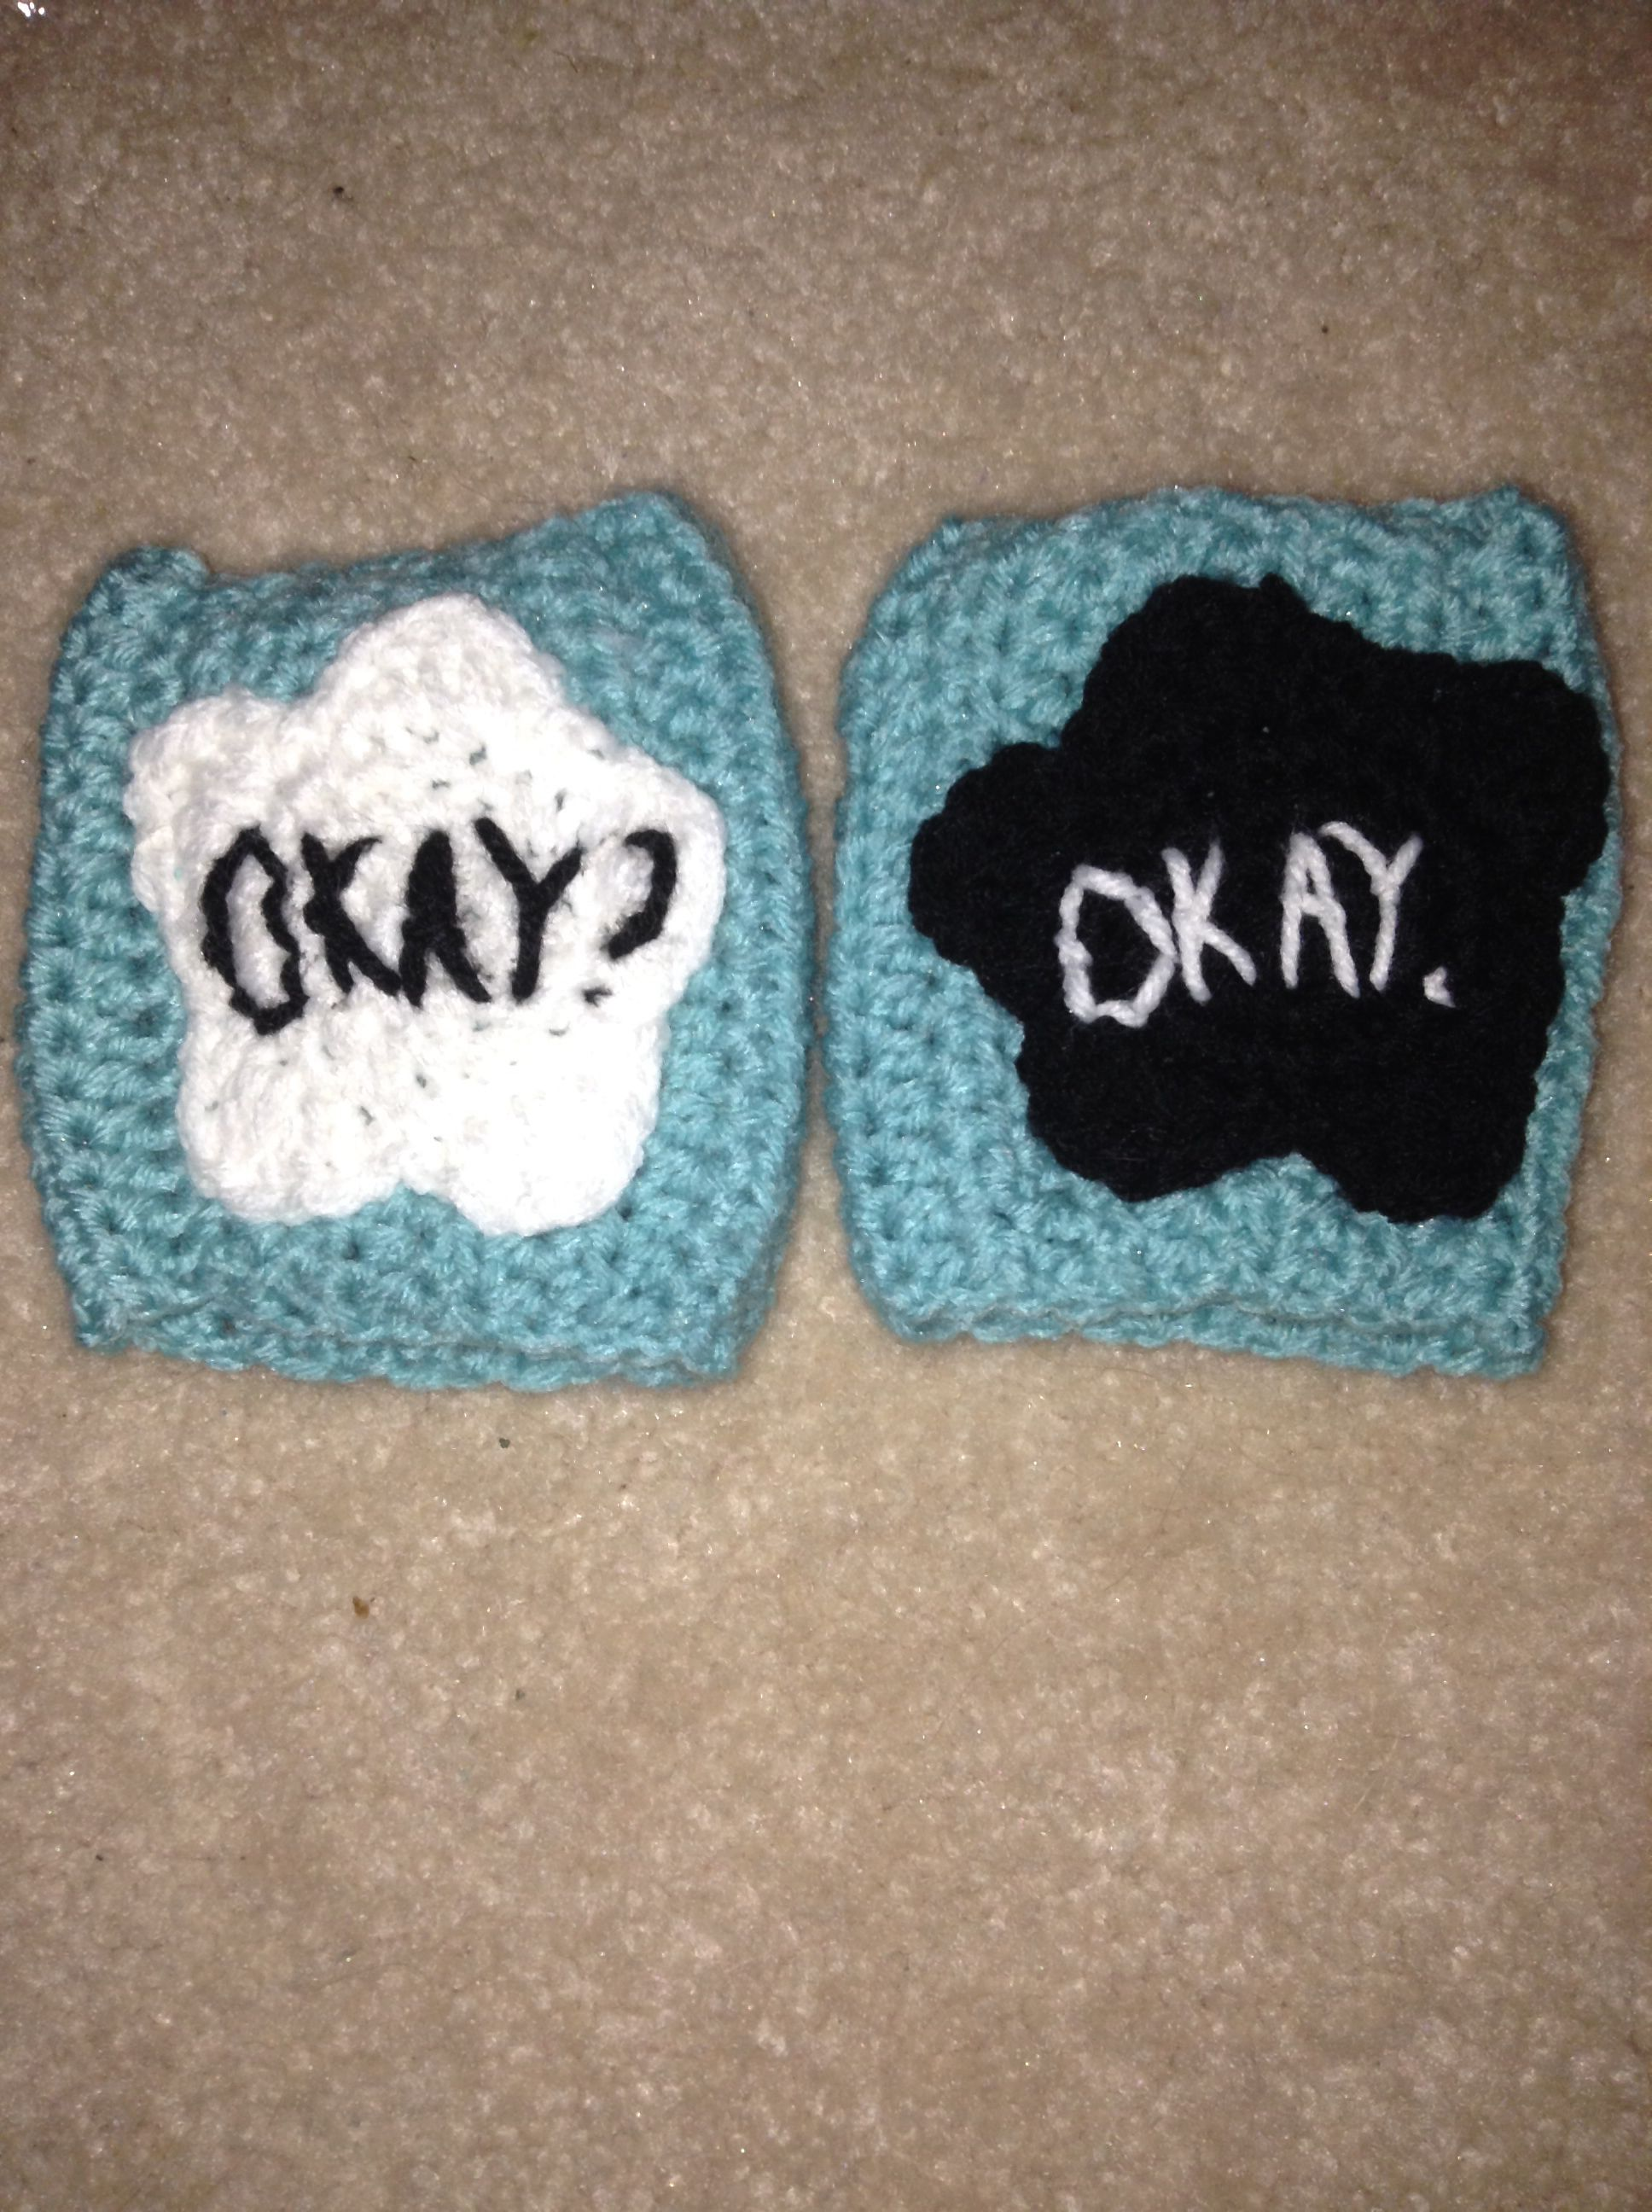 Crochet Tfios gloves. Sorry no pattern :( just made it up as I went along